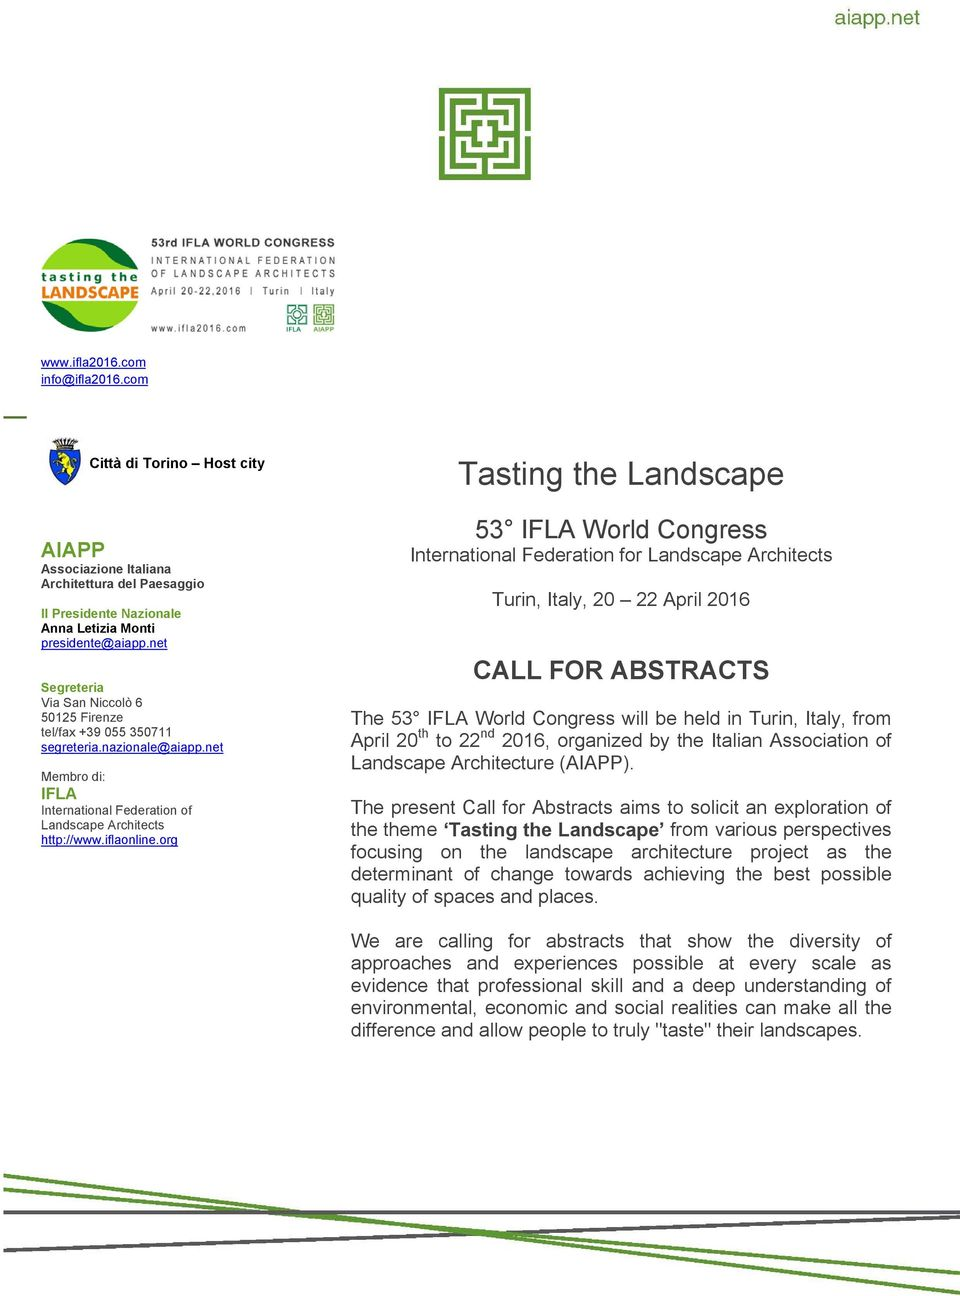 org Tasting the Landscape 53 IFLA World Congress International Federation for Landscape Architects Turin, Italy, 20 22 April 2016 CALL FOR ABSTRACTS The 53 IFLA World Congress will be held in Turin,